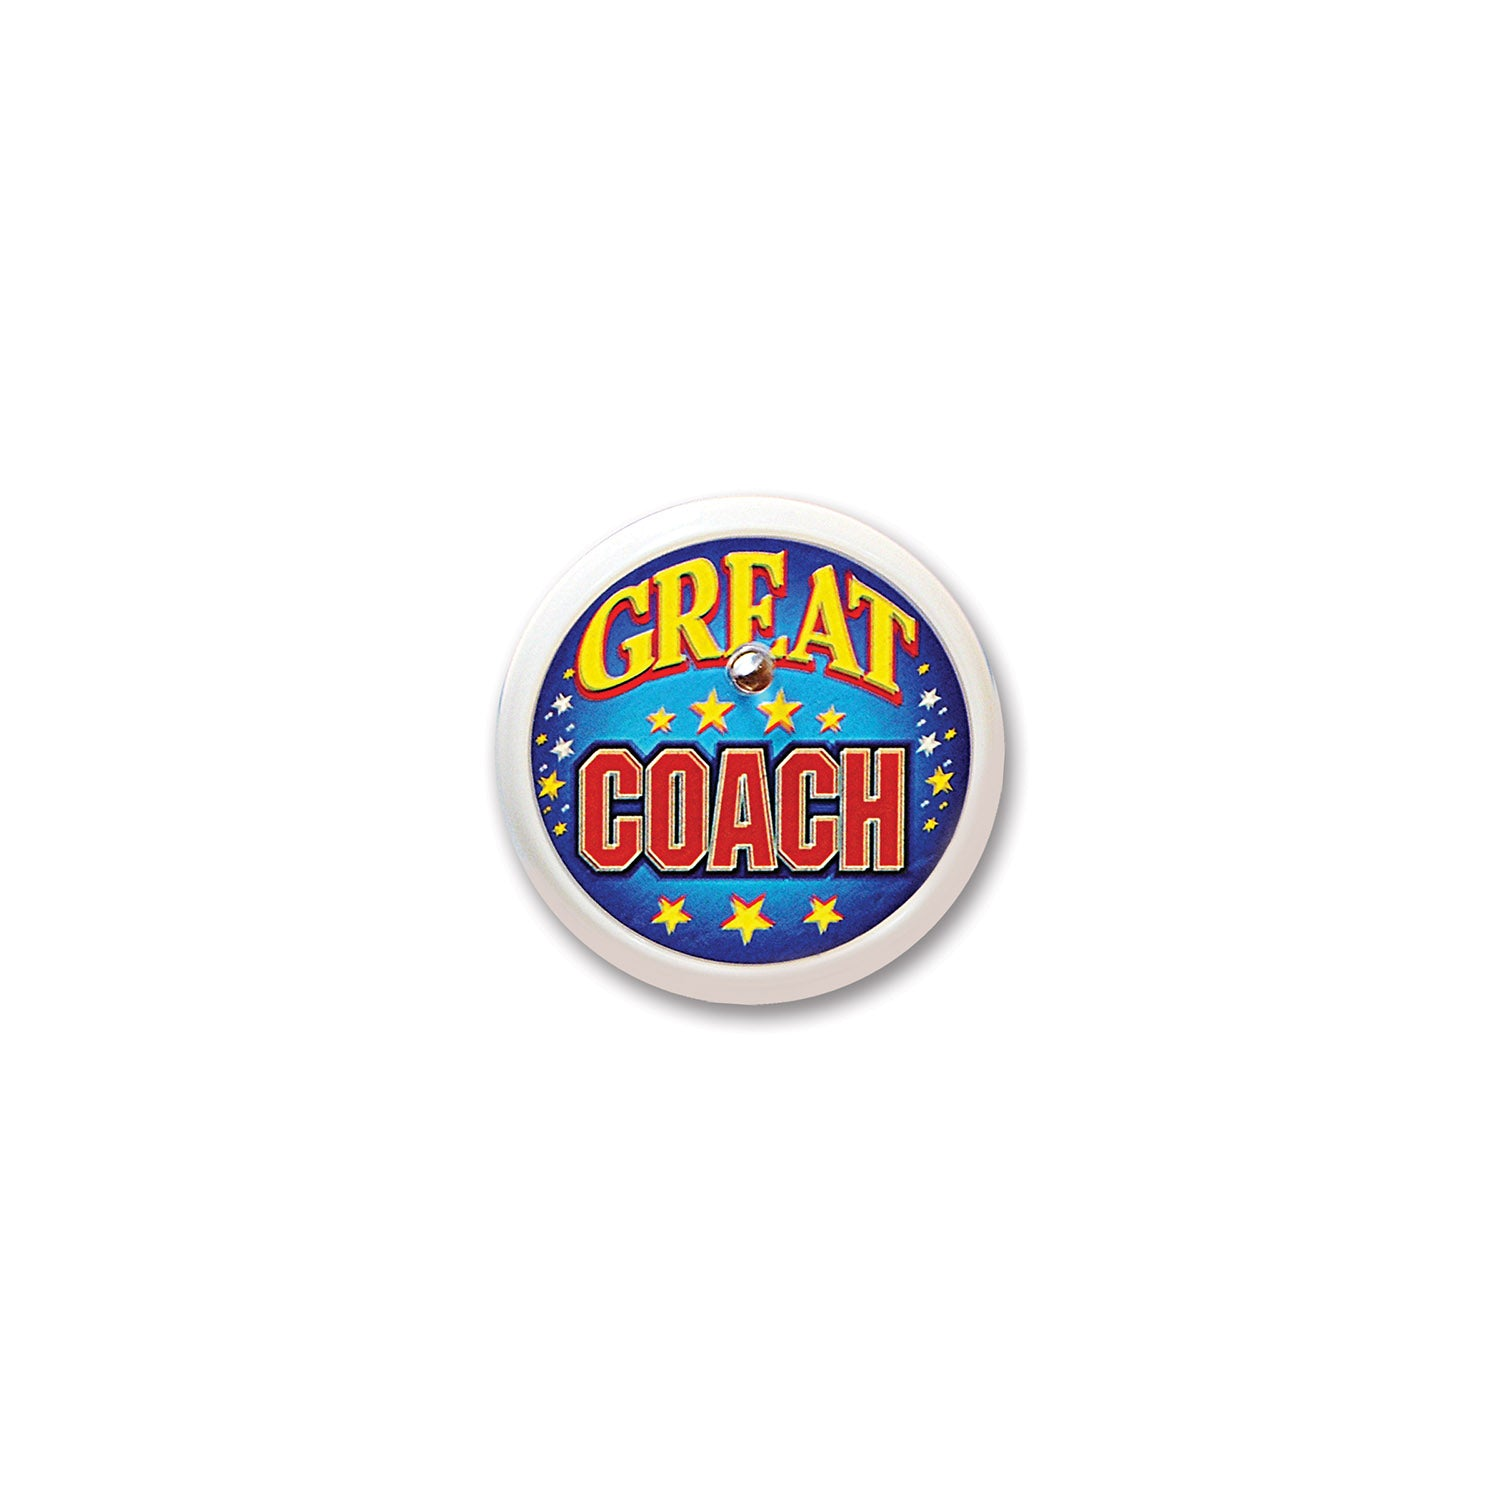 Great Coach Blinking Button by Beistle - Sports Theme Decorations